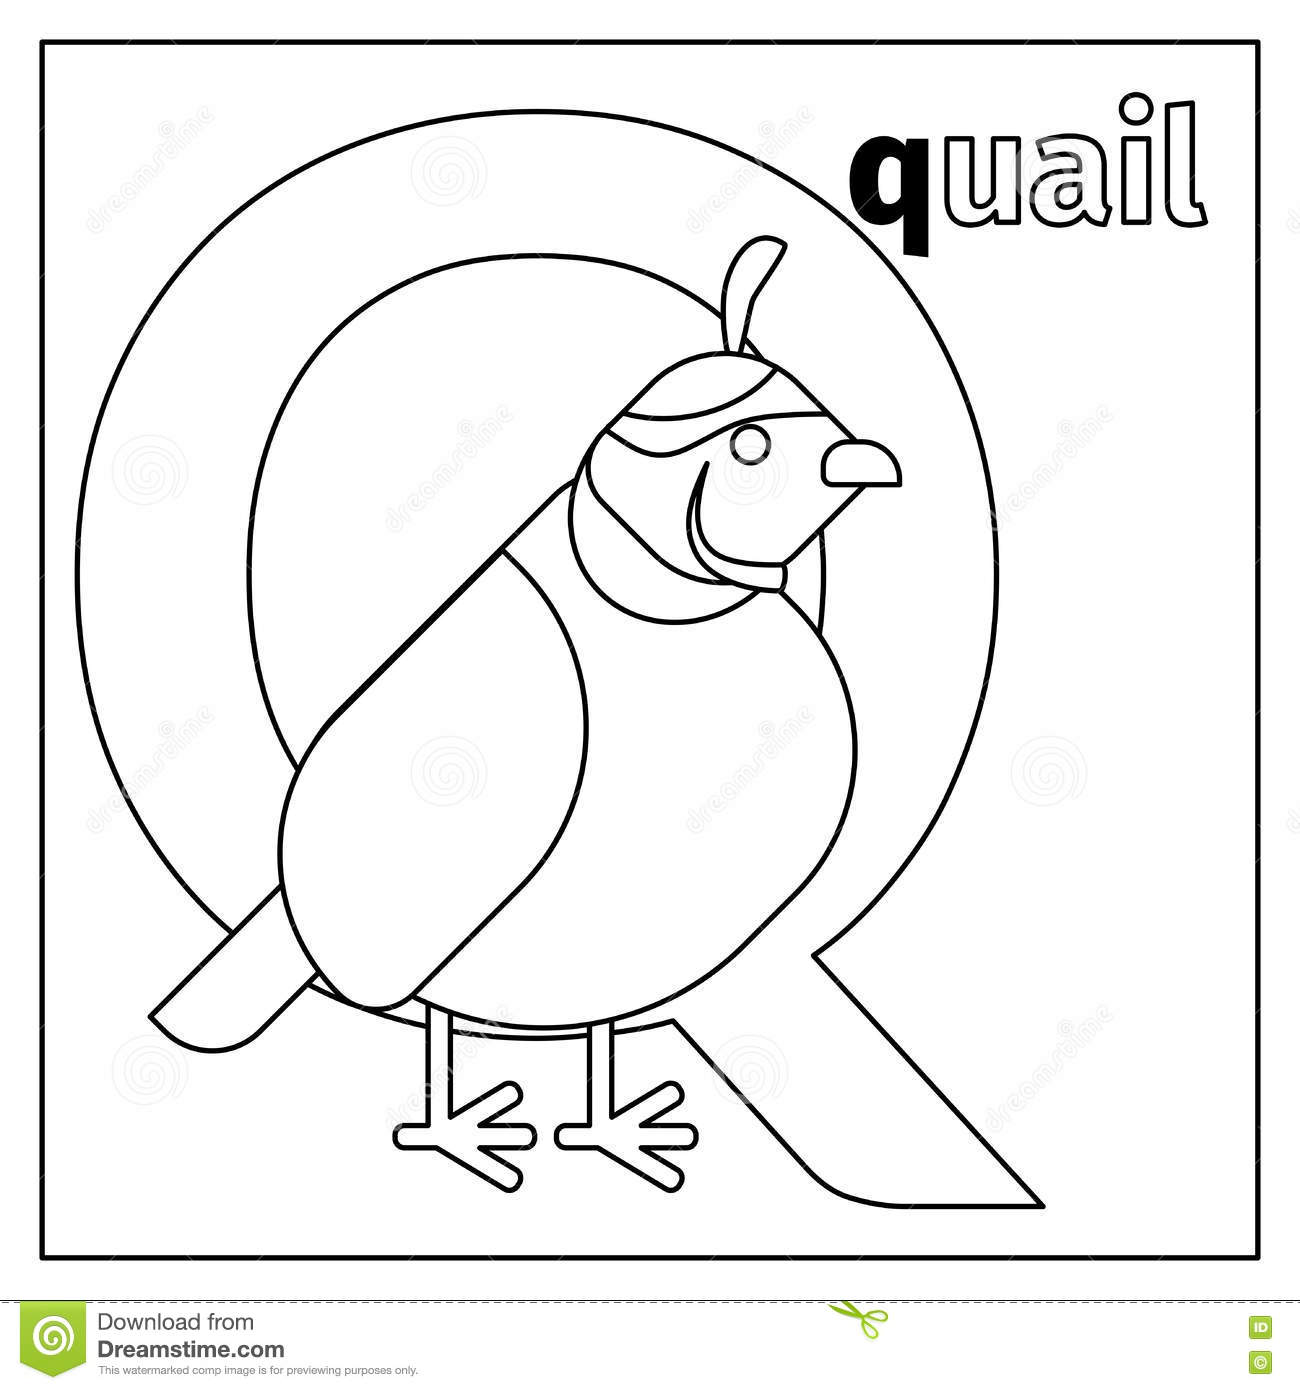 Quail Letter Q Coloring Page Stock Vector Image 79434945